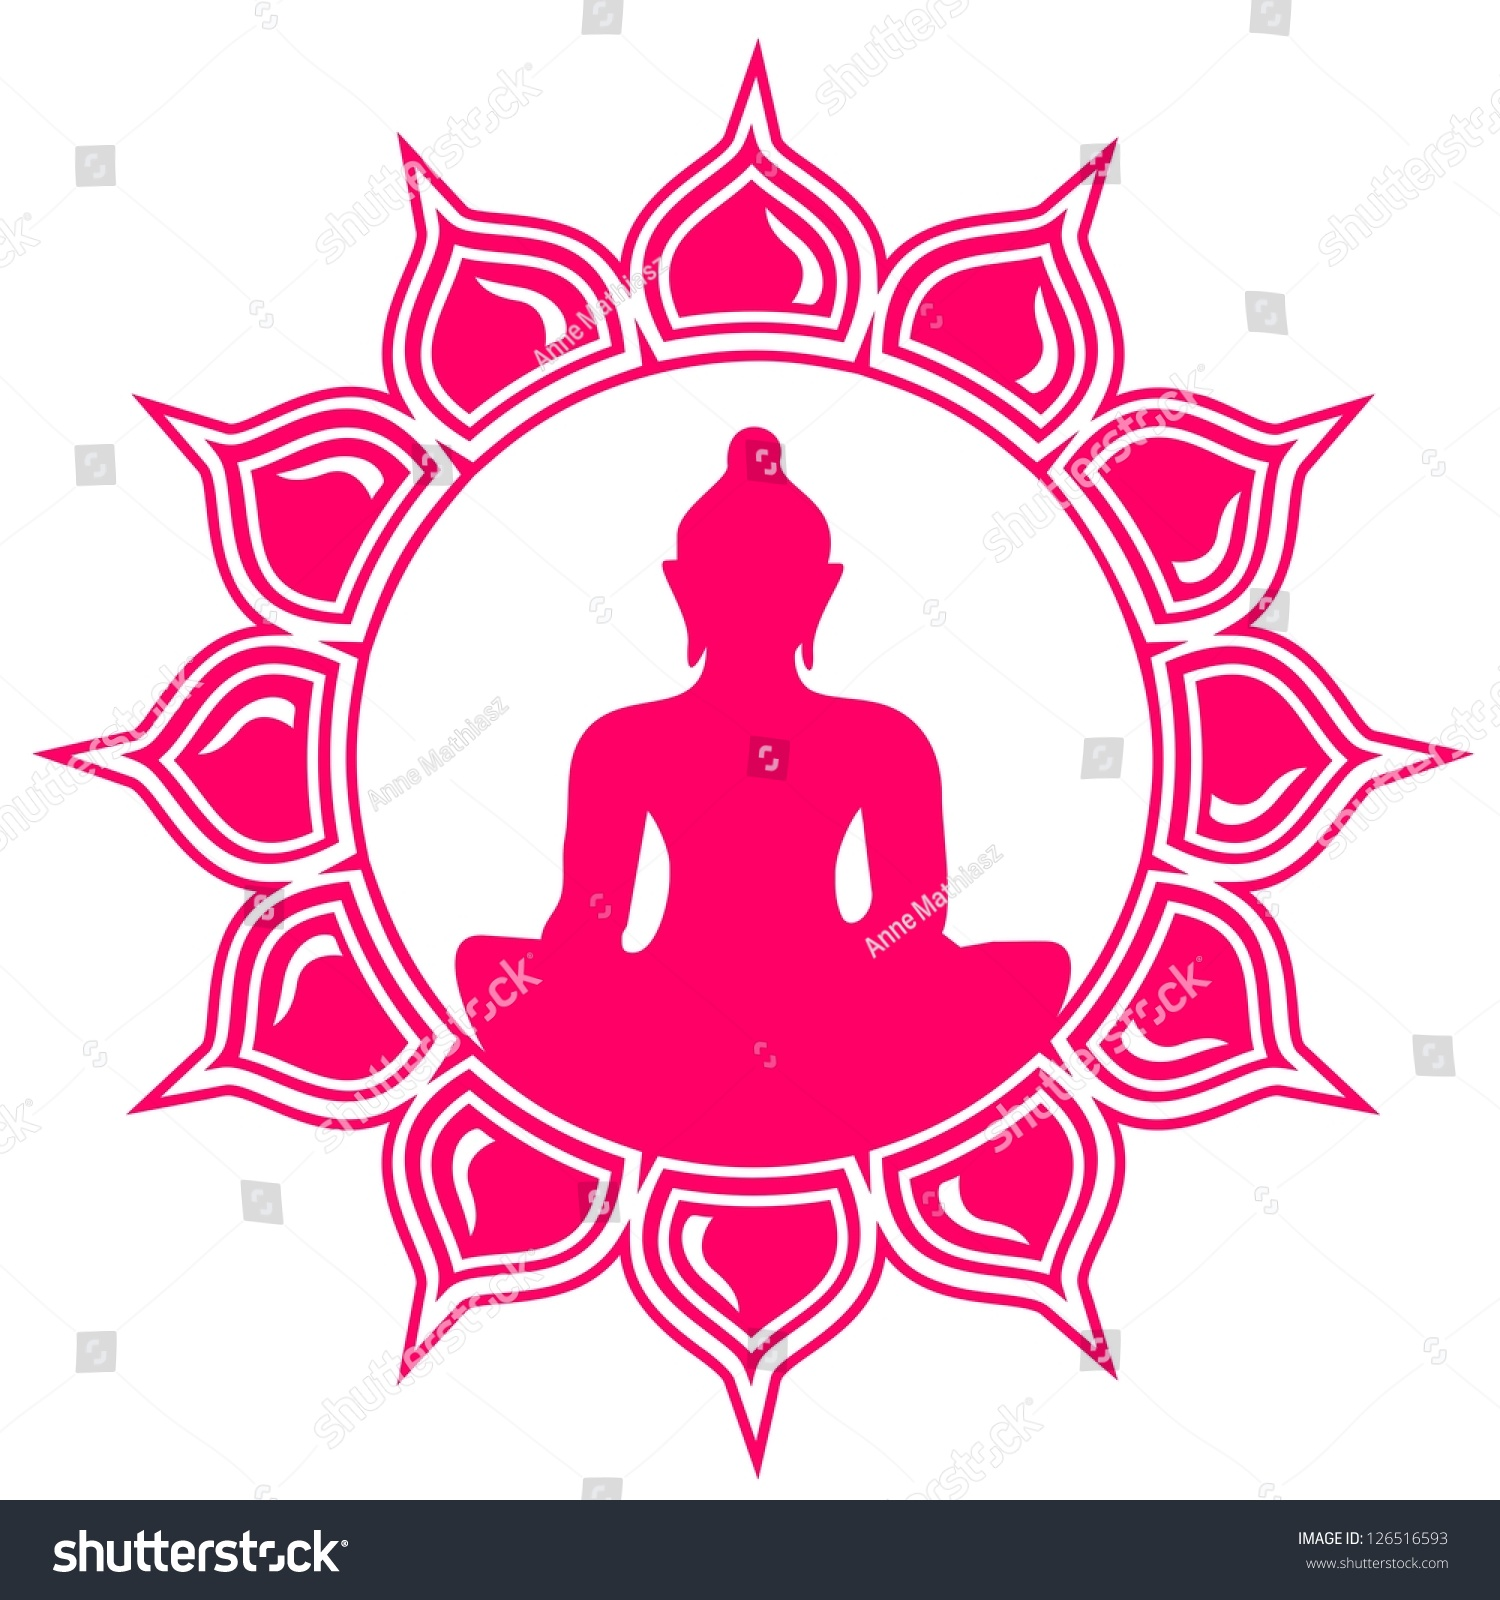 hawleyville buddhist dating site Dating rules according to buddha history deems buddha as one of the wisest men in history from mindfulness to peace and tranquility many people seek out the advice of the man who seems to.